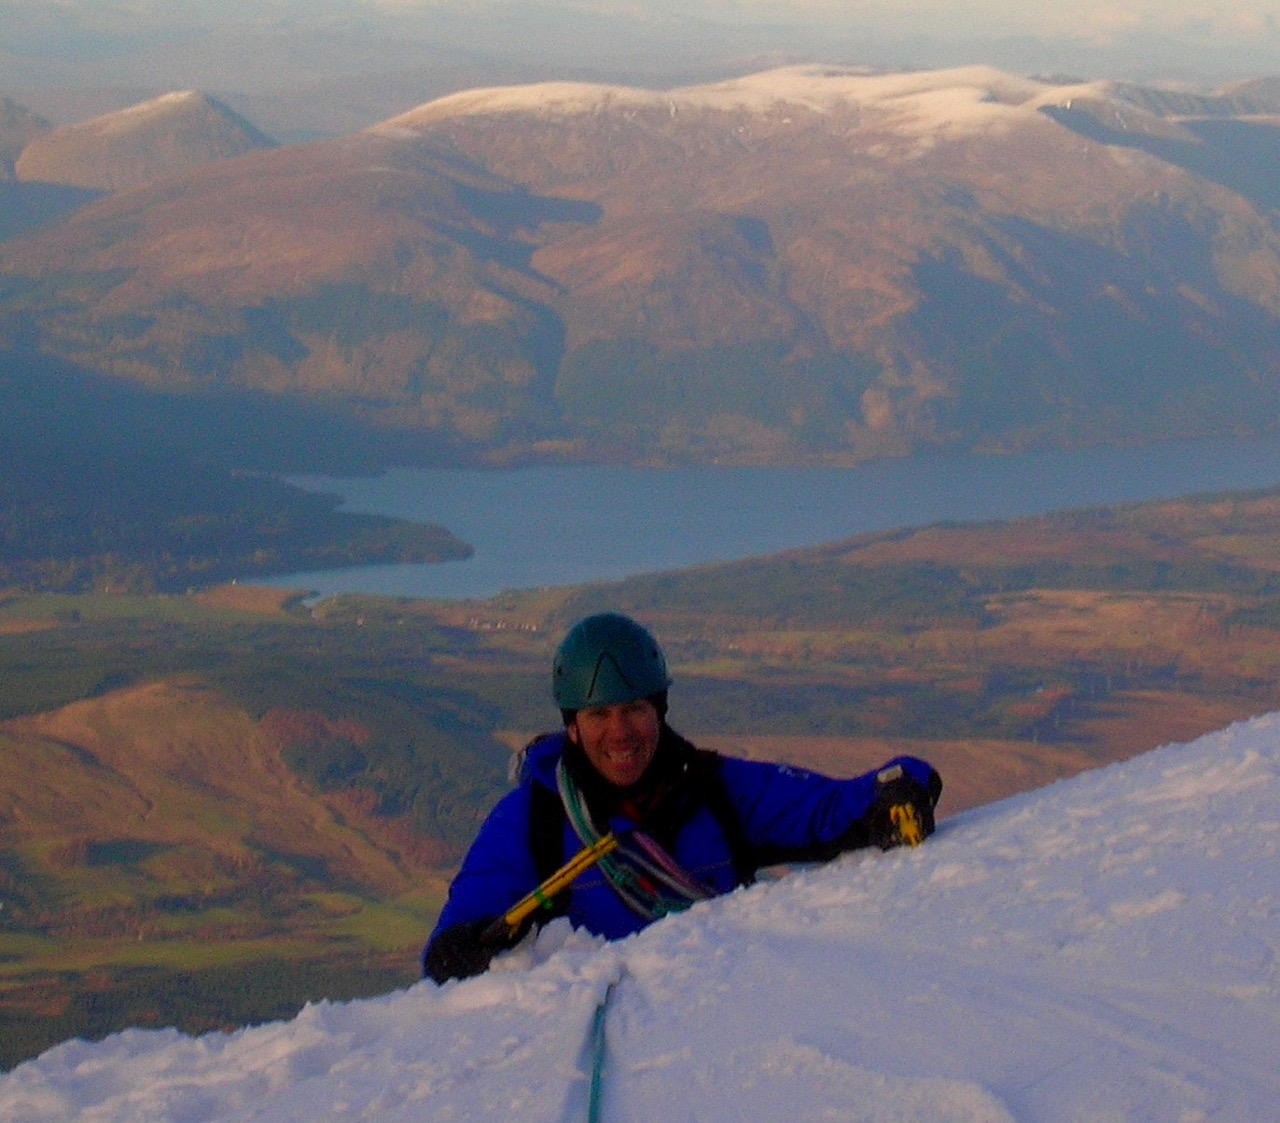 Topping Out On The Tower Ridge, North Face Ben Nevis